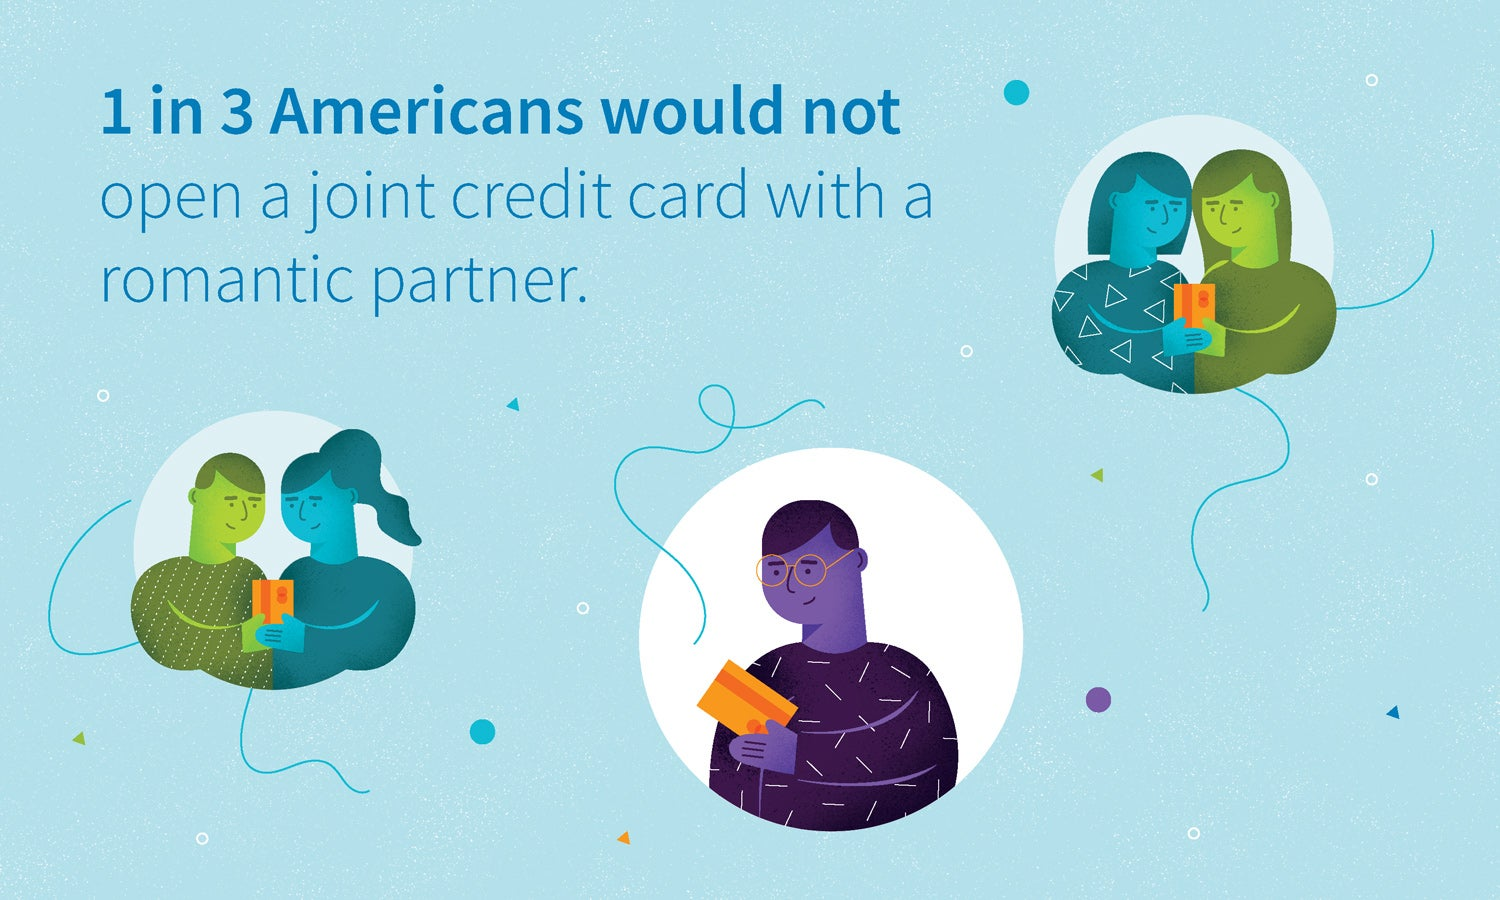 1 in 3 Americans would not open a joint credit card